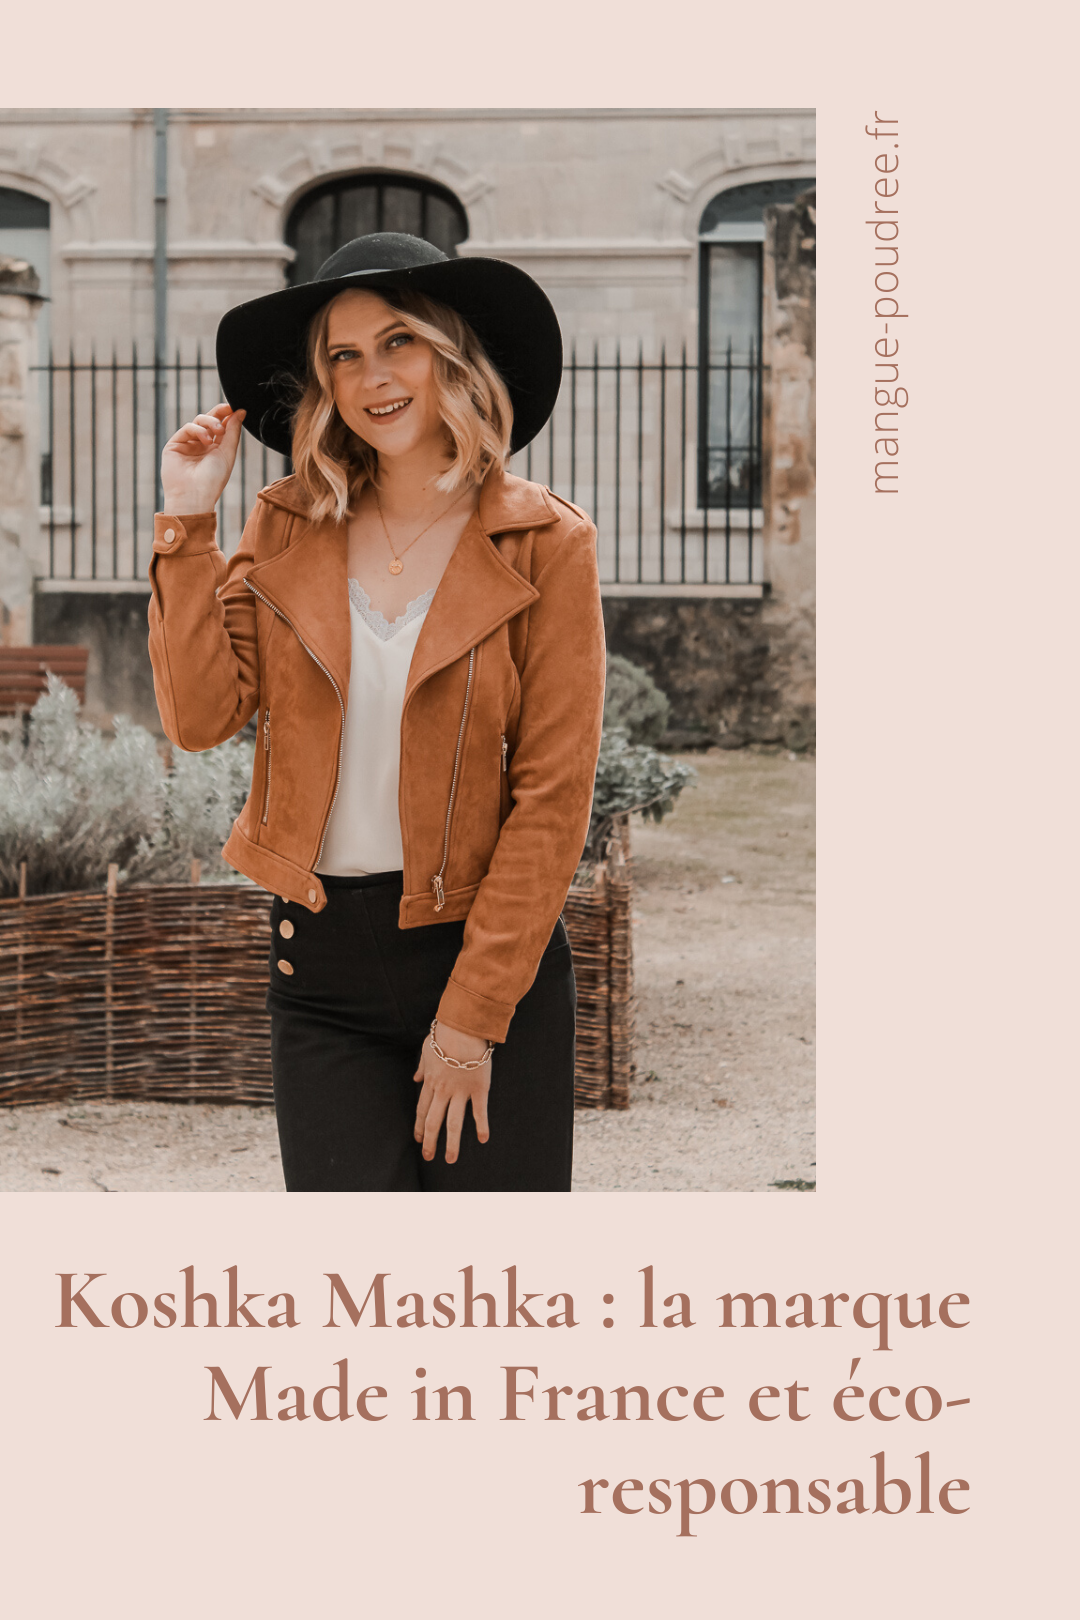 Avis Koshka Mashka - comment porter le jean flare look - Blog Mangue Poudrée - Blog mode et lifestyle Reims Paris Influenceuse - Pinterest - 2